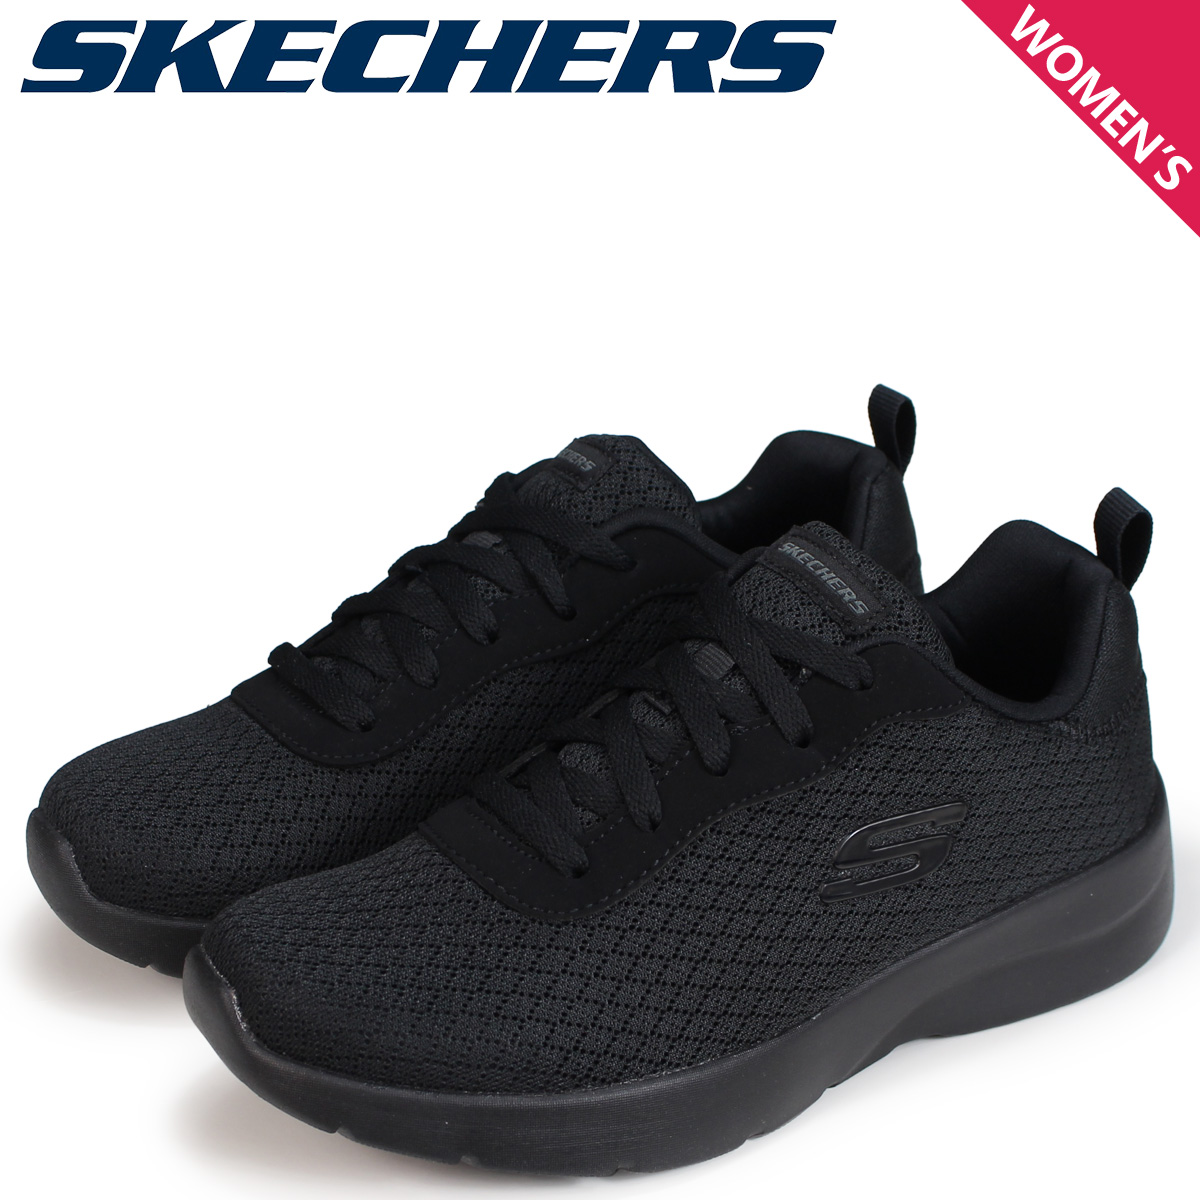 Sugar Online Shop: SKECHERS スケッチャー